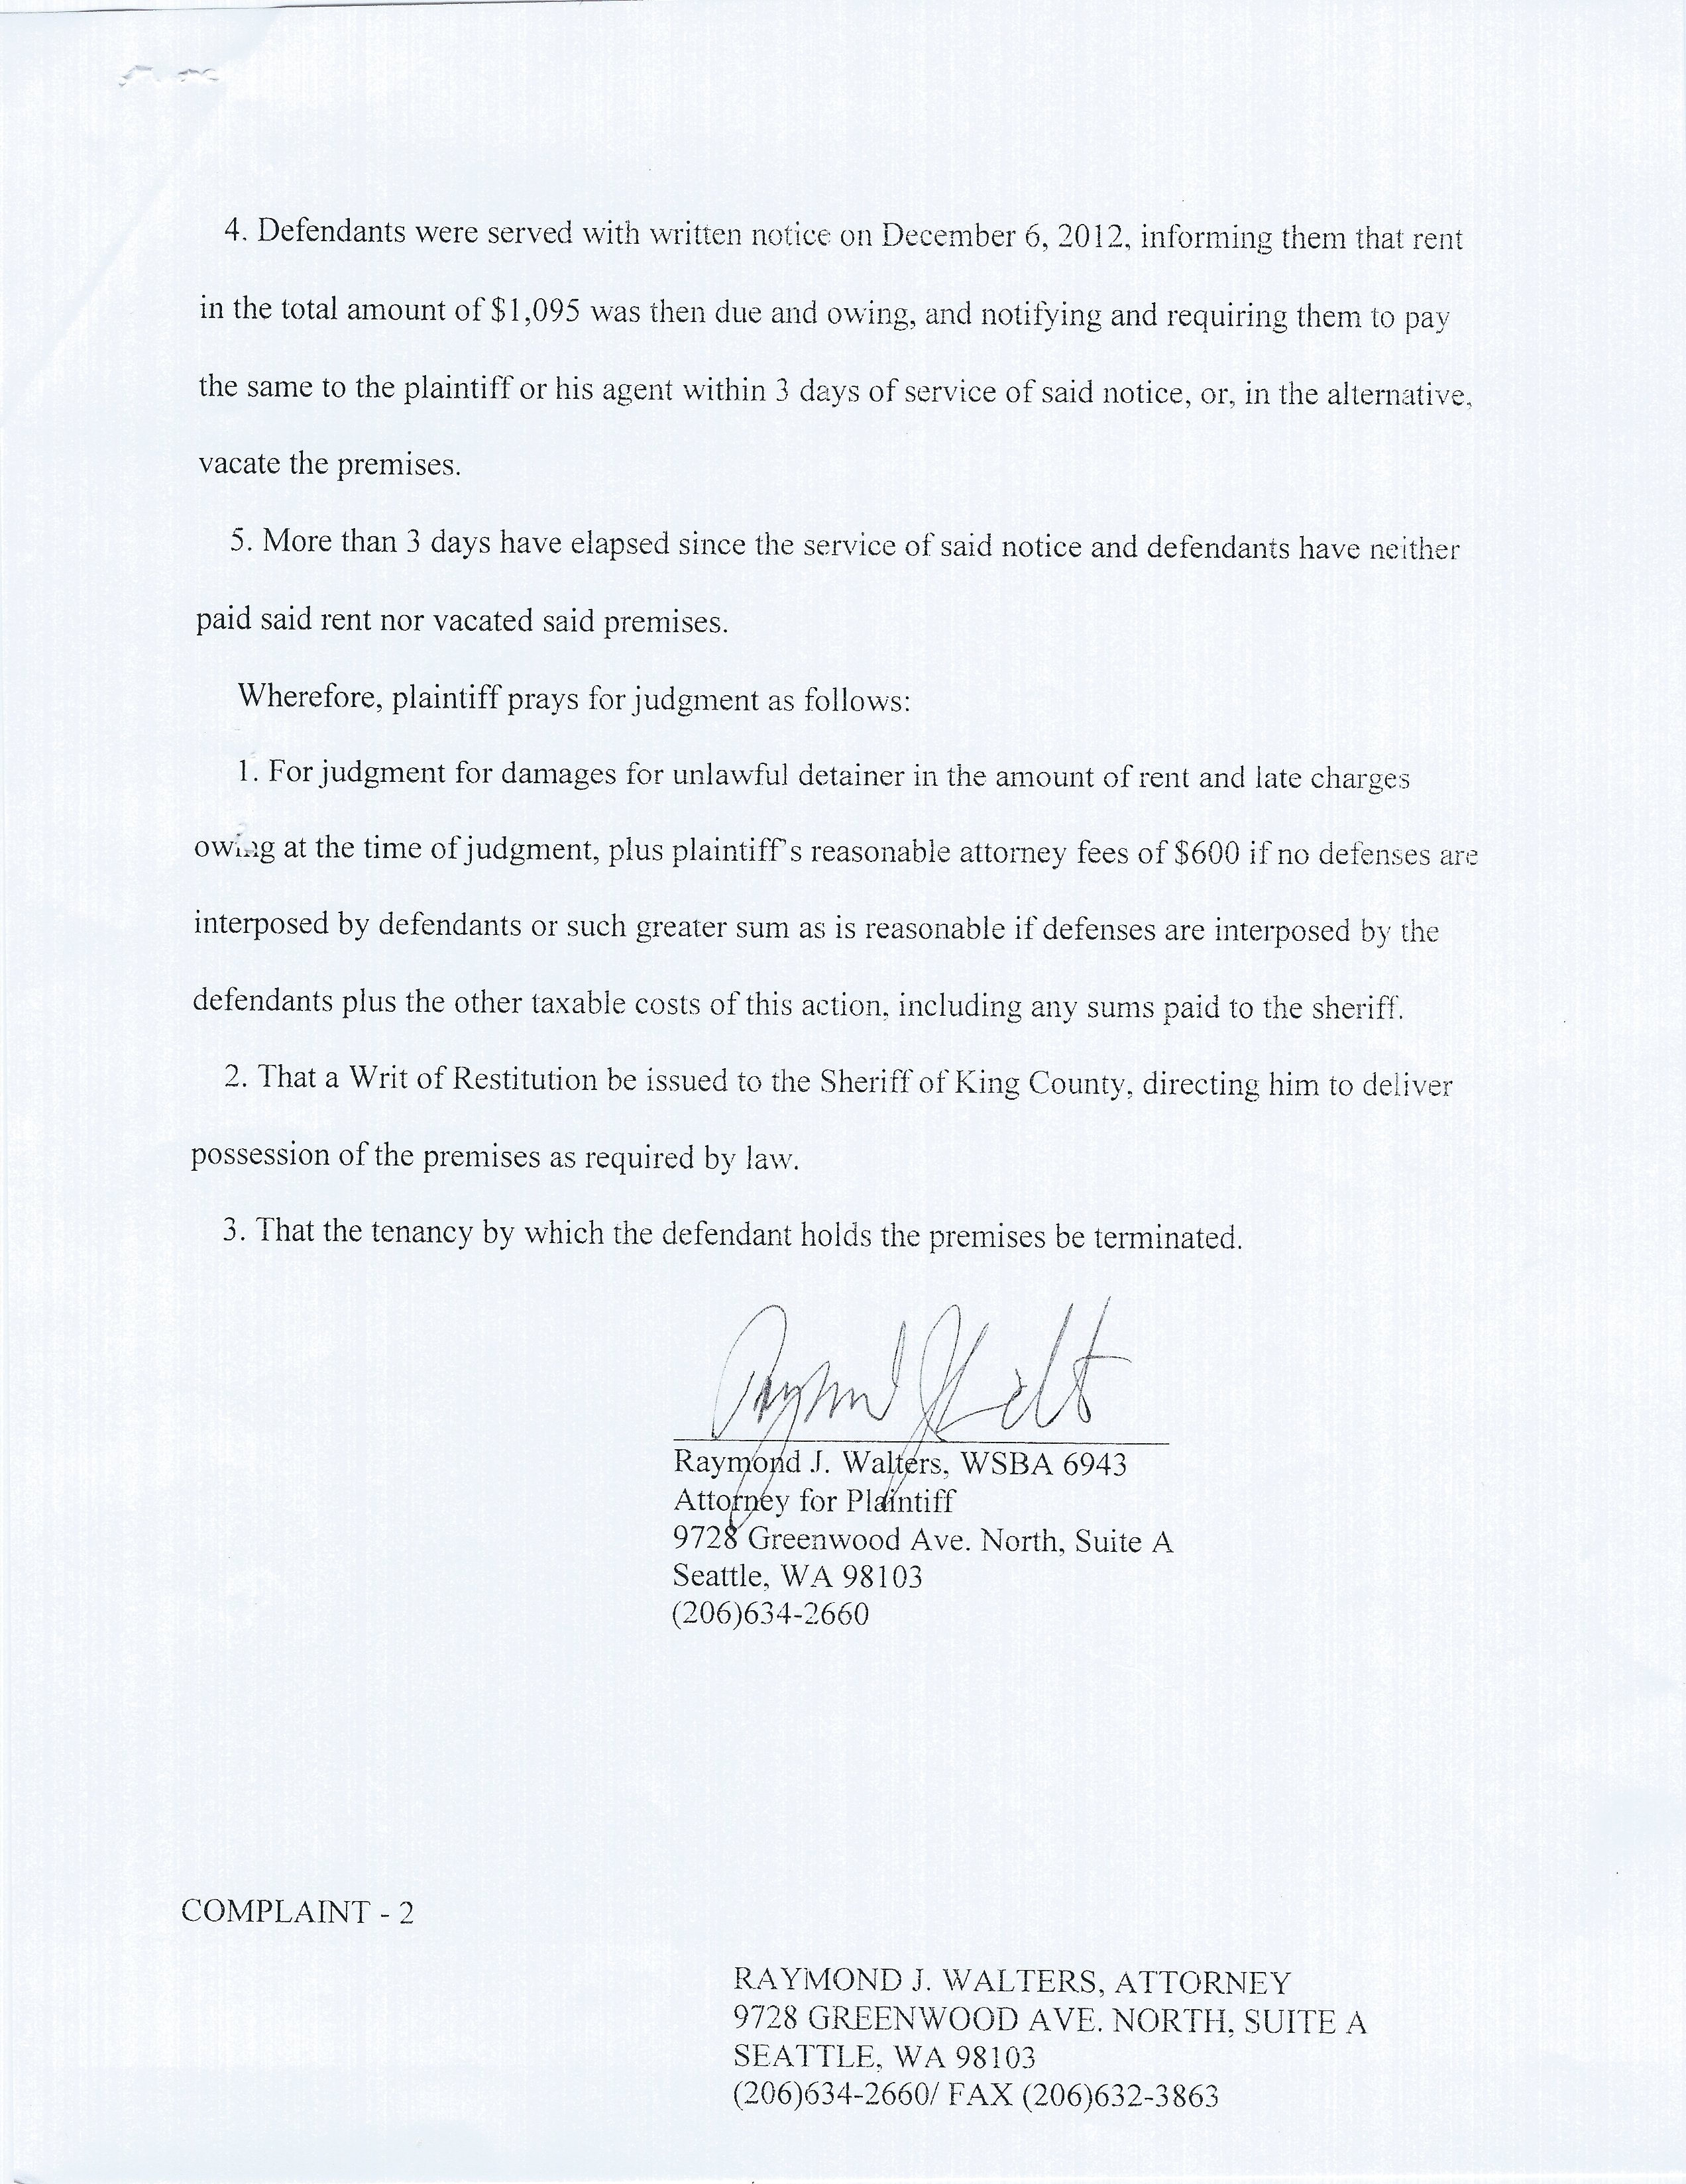 I received a Residential Eviction Summons and Notice of Unlawful